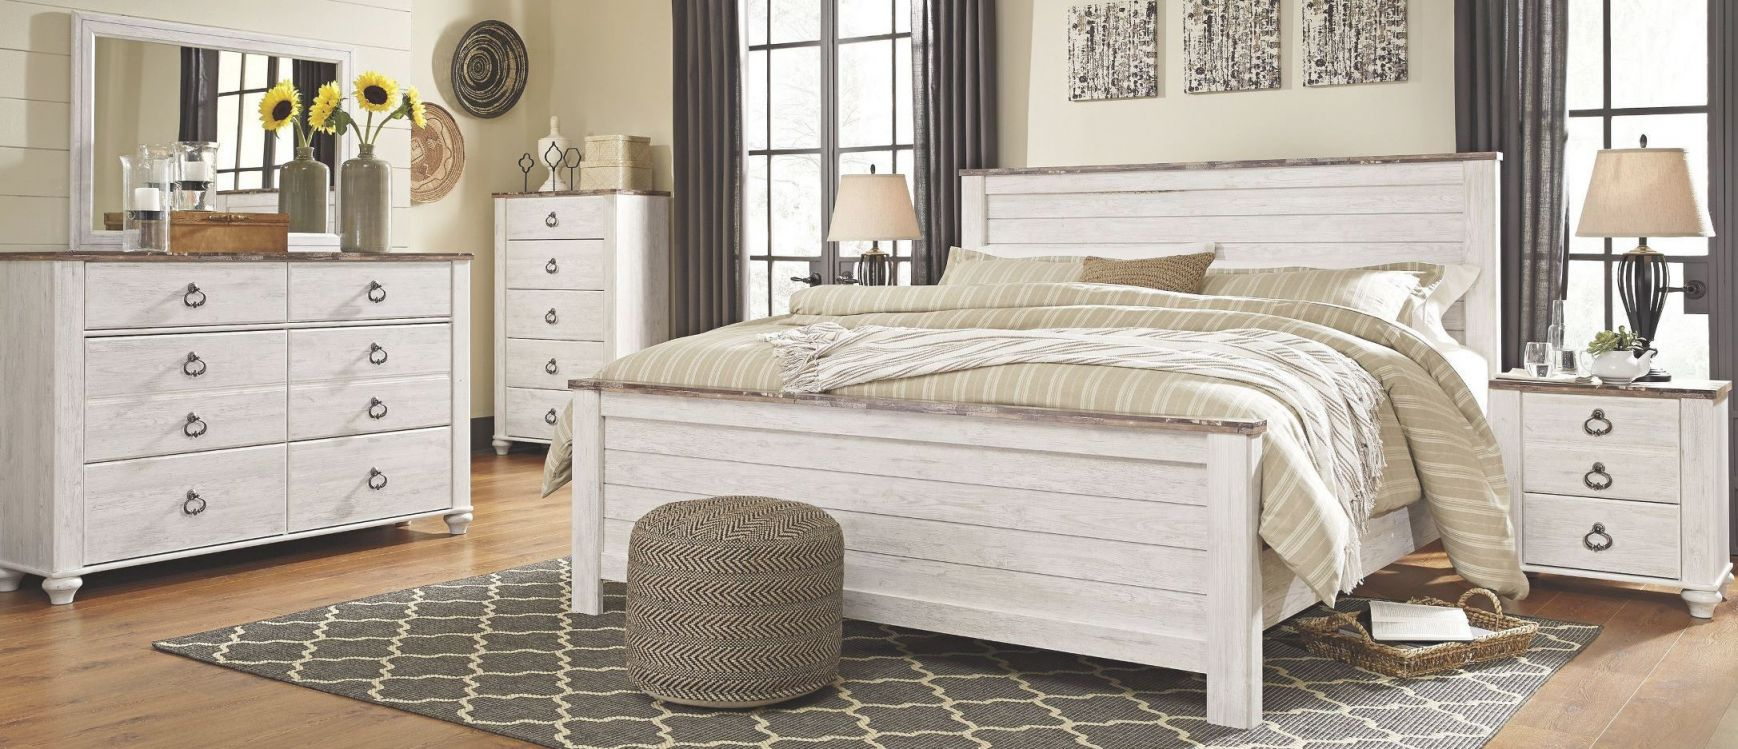 Willowton Whitewash Panel Bedroom Set in Cheap White Bedroom Furniture Sets